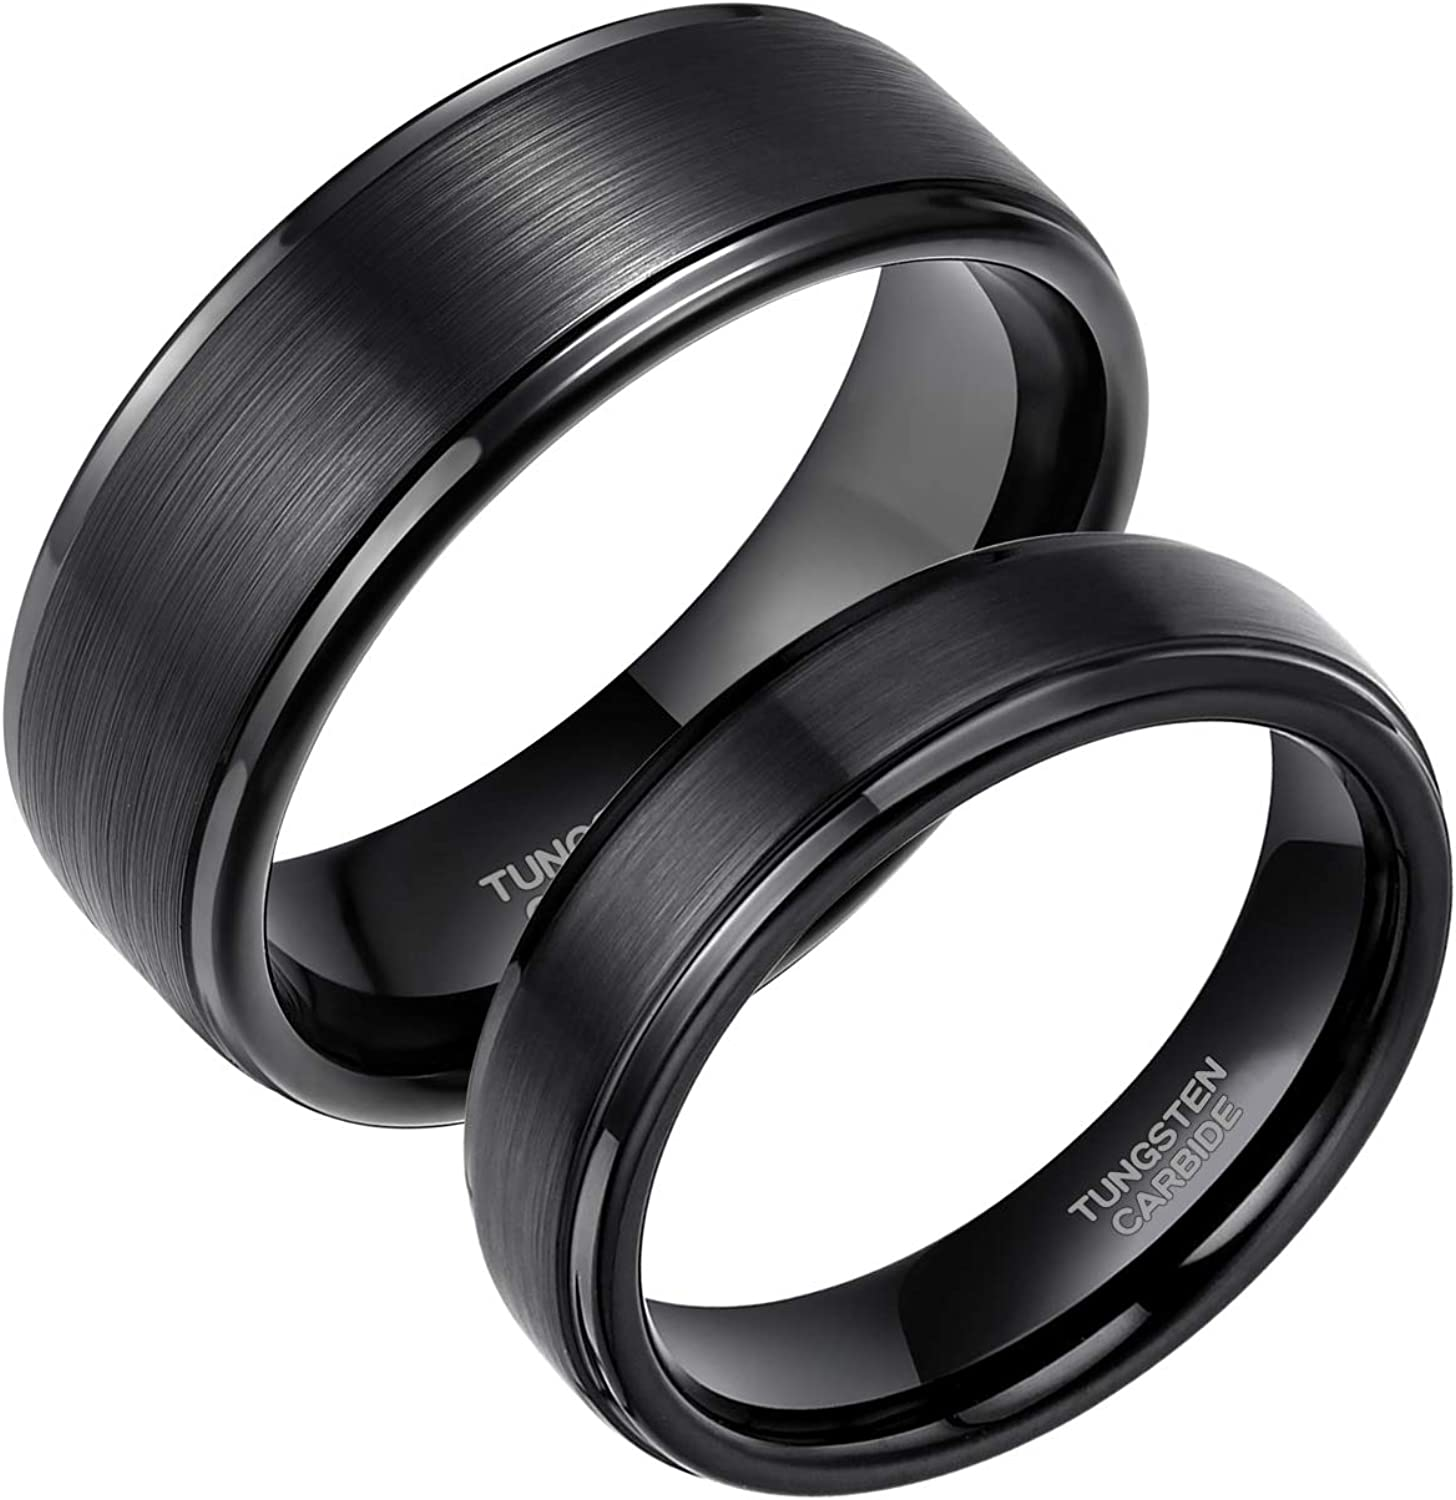 Greenpod 6mm 8mm Black Tungsten Rings for Men Women Brushed Wedding Bands Ring Matte Finished Comfort Fit Size 4-15